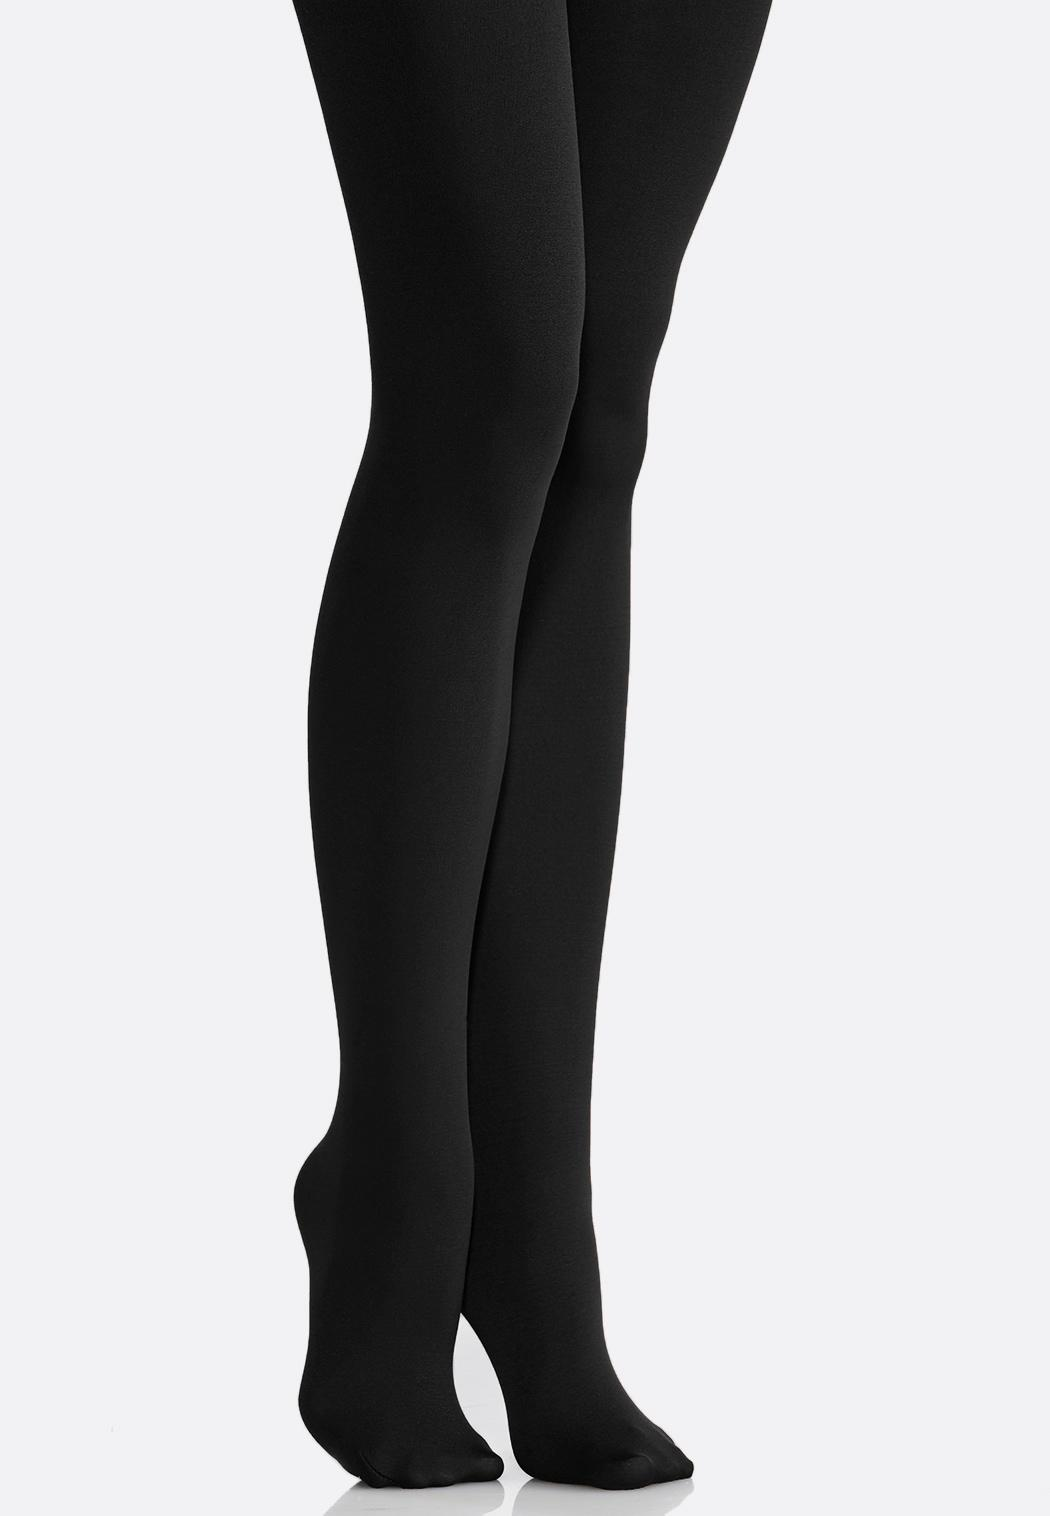 Plus Extended Fleece Lined Tights